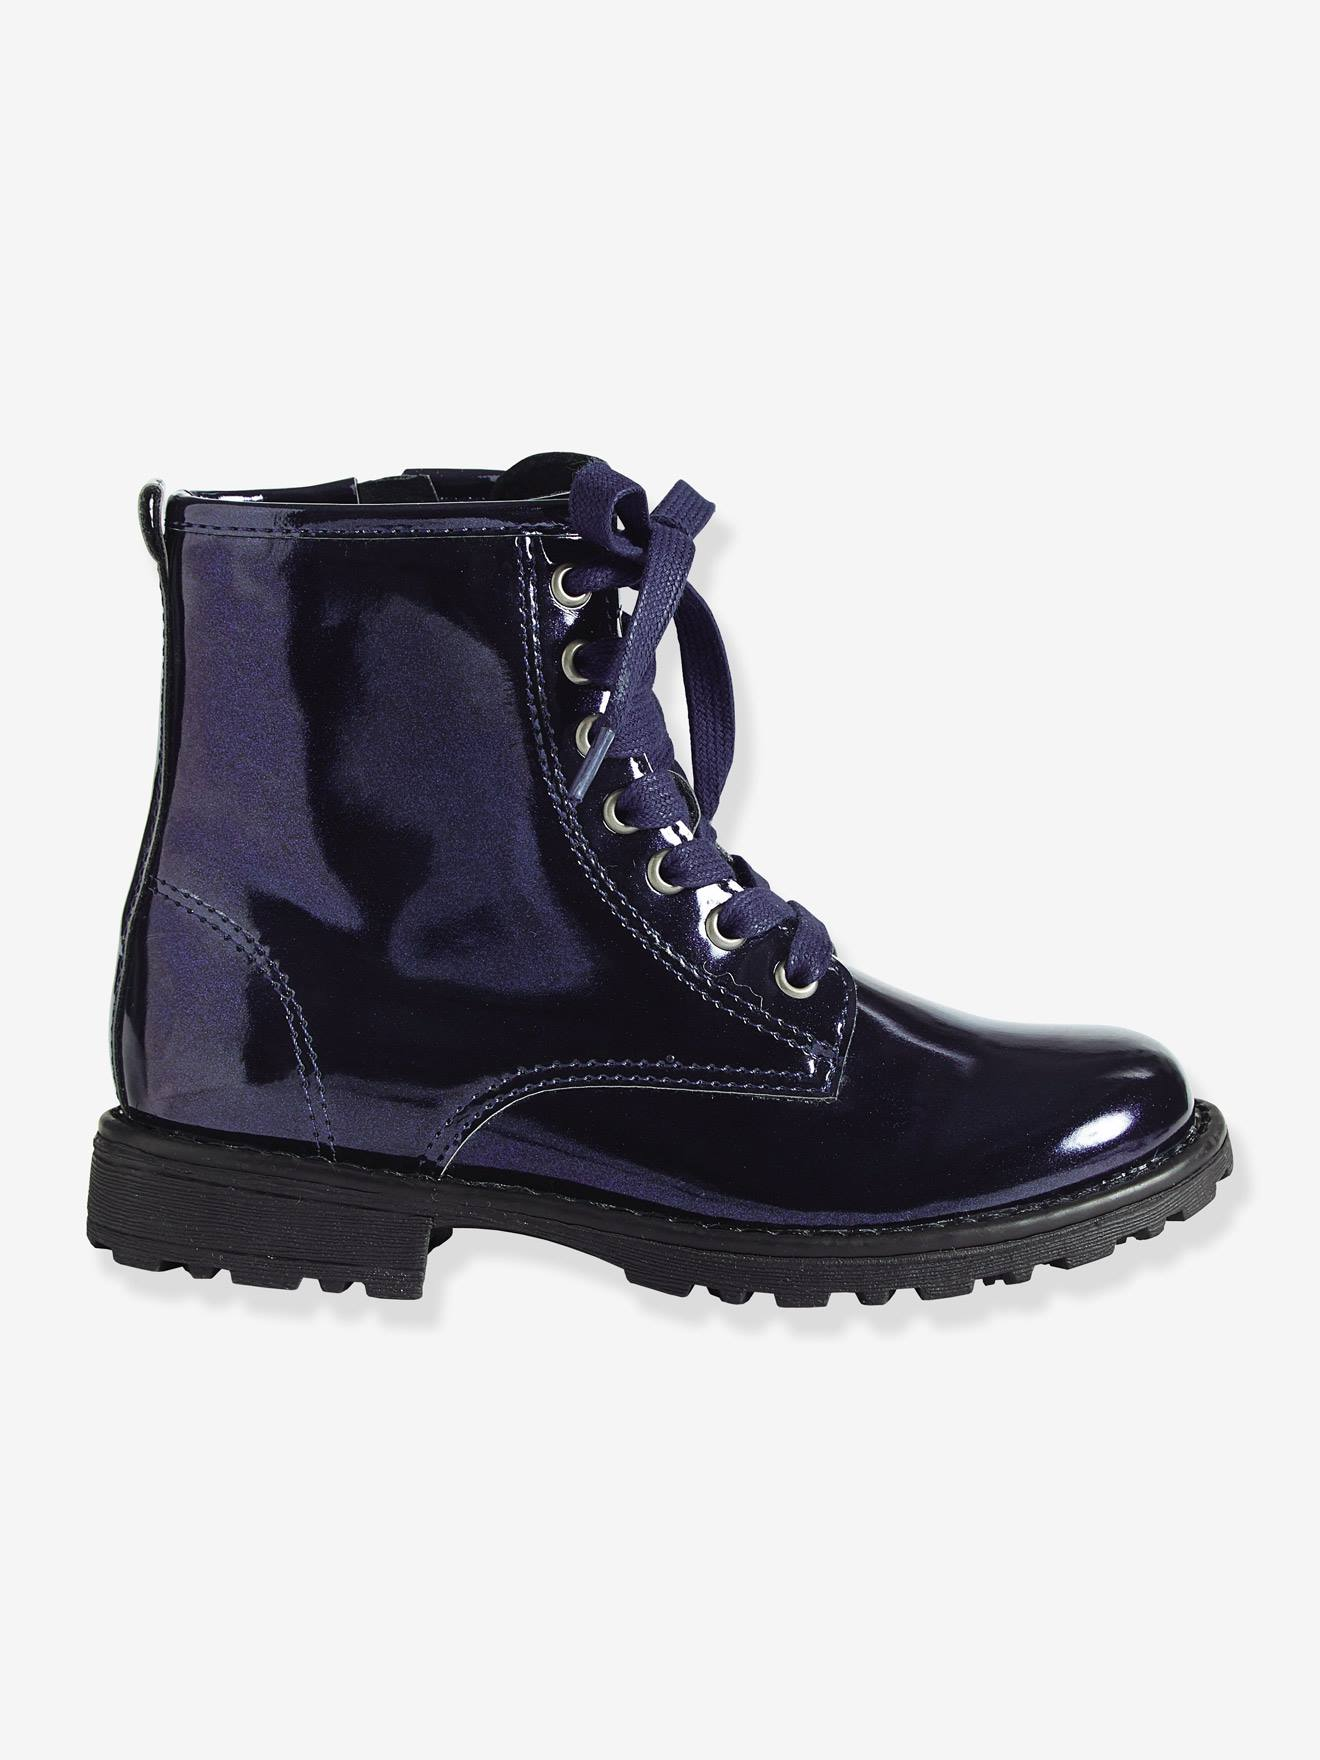 Top Bottes et bottines fille selon les notes